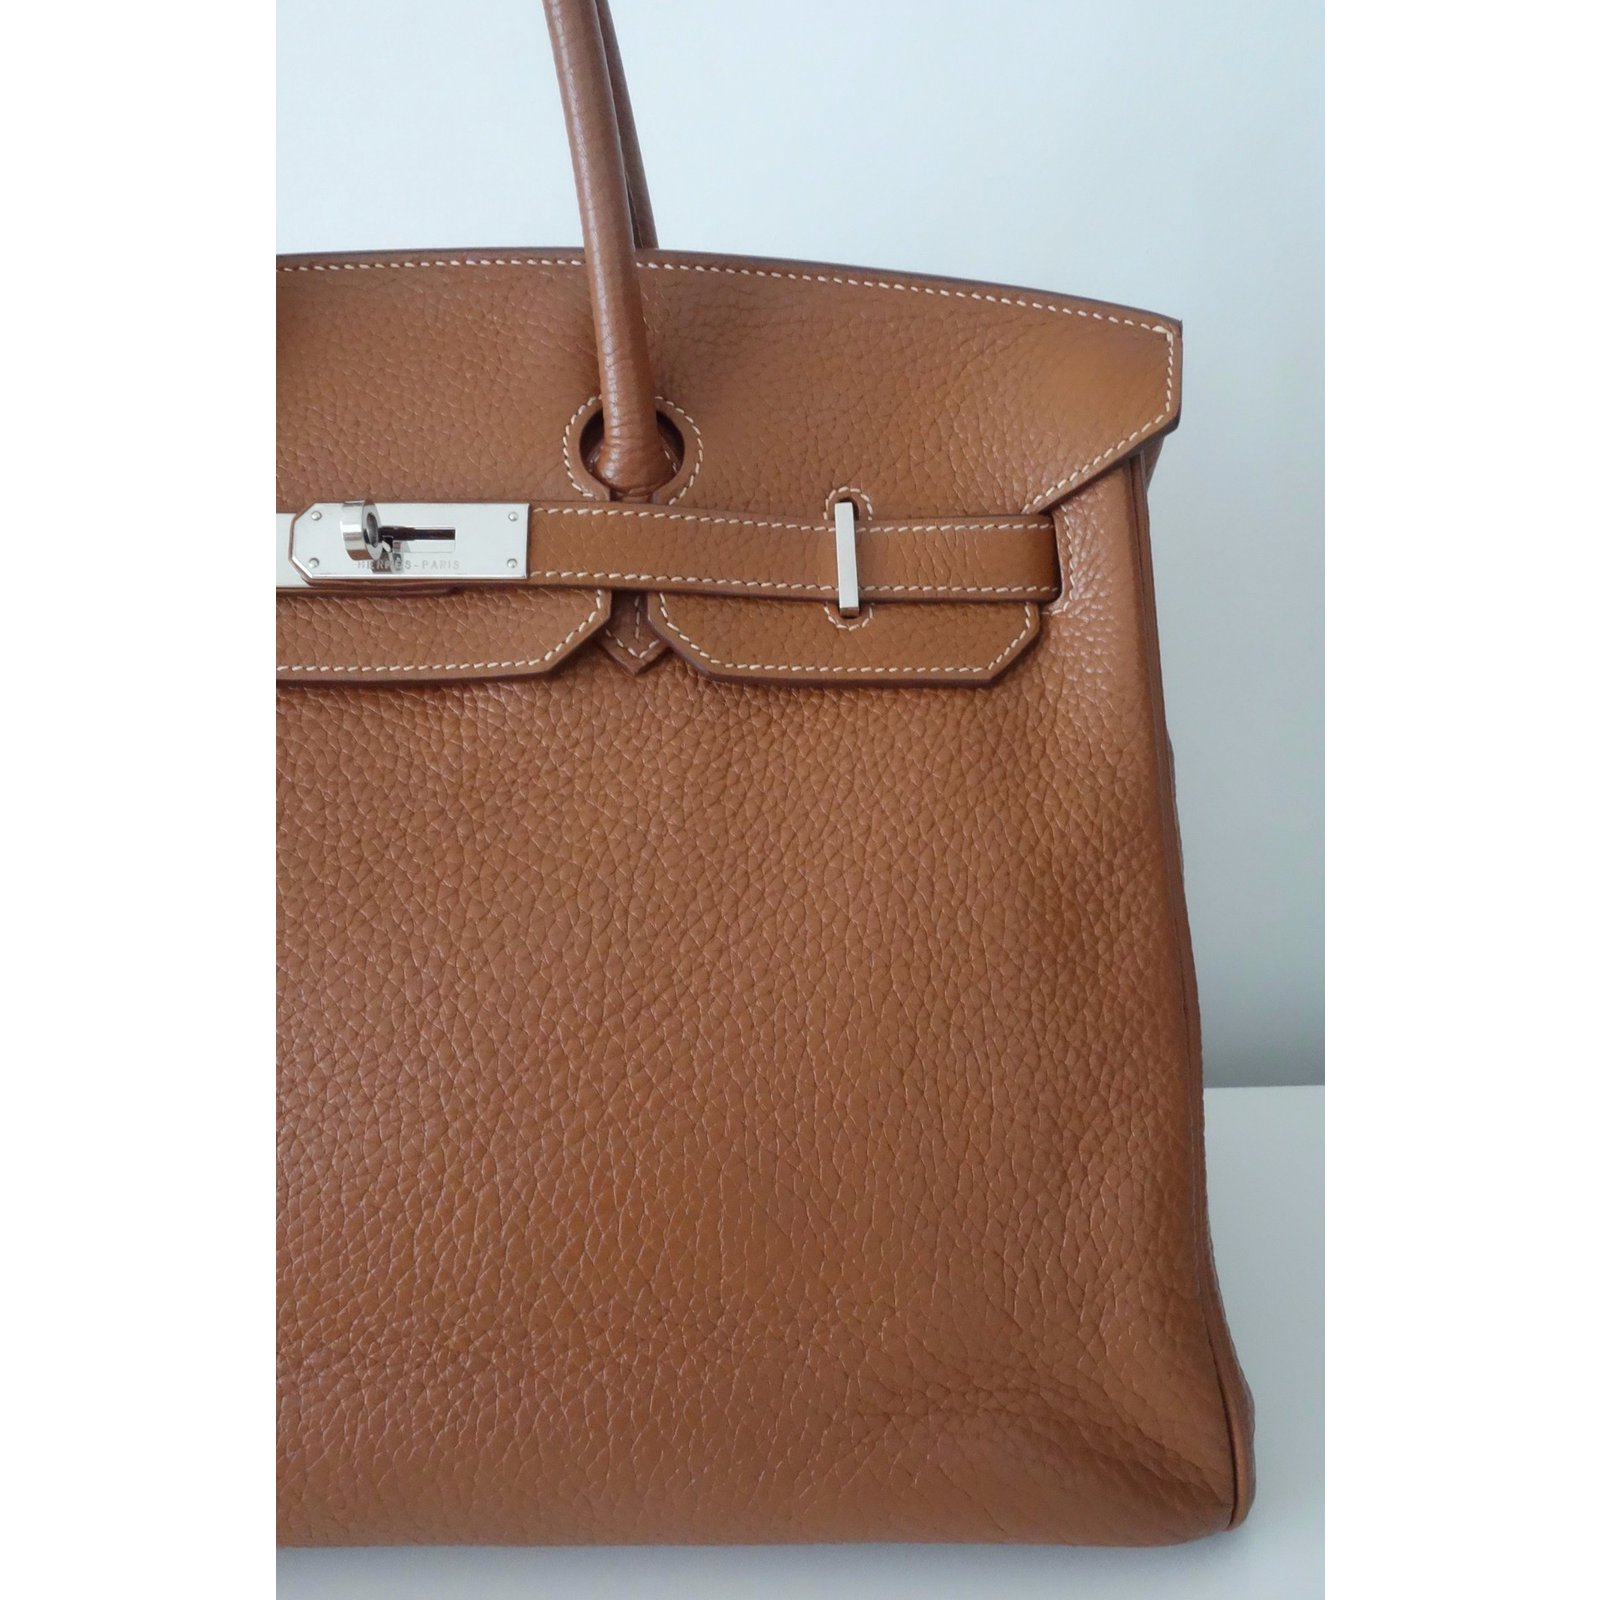 18a79b37b92a shopping hermès hermes birkin gold 35 handbags leather other ref.41994 joli  closet ba303 0cad2